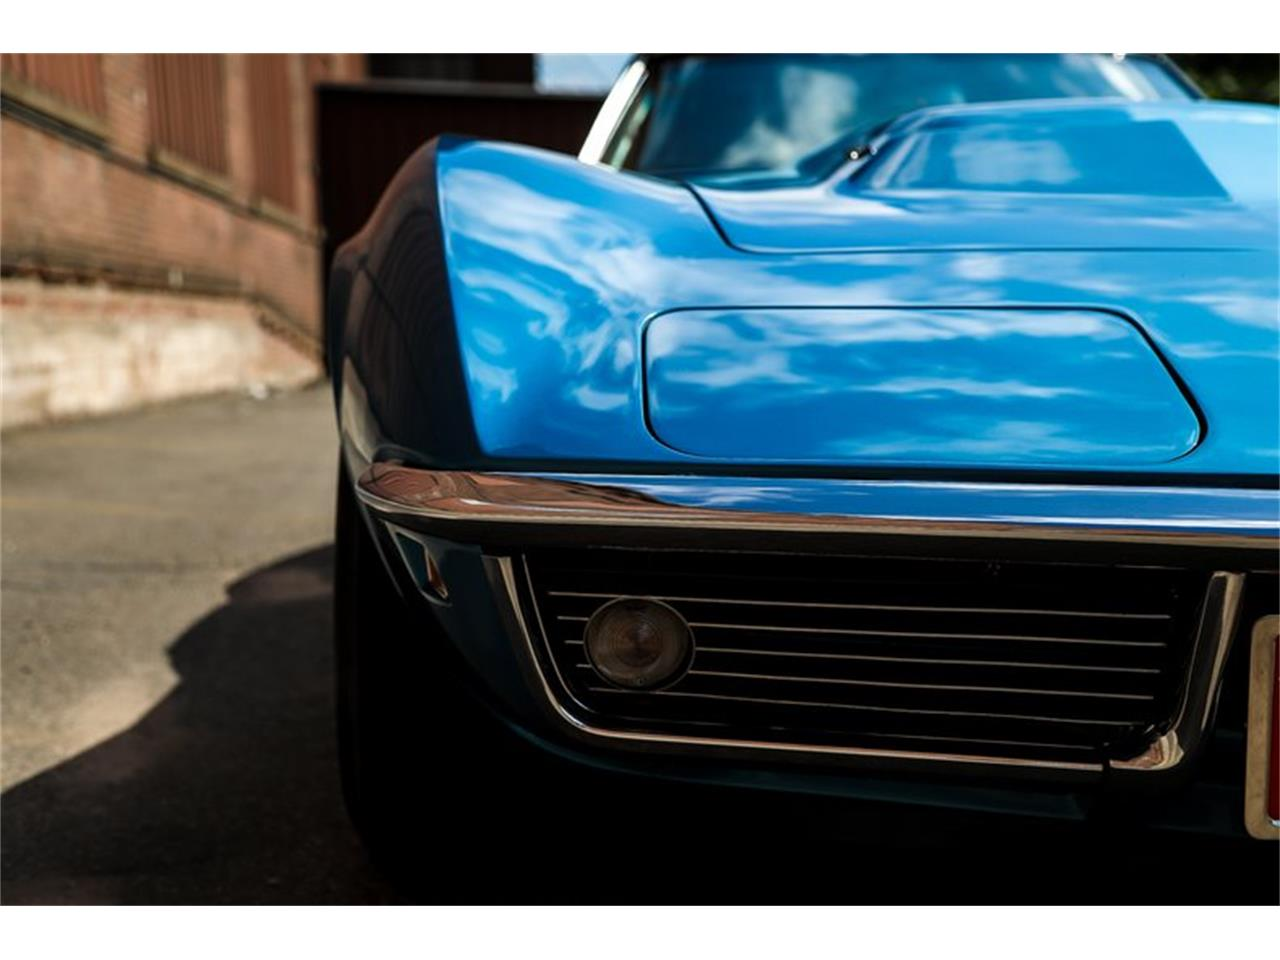 1969 Chevrolet Corvette for sale in Wallingford, CT – photo 85